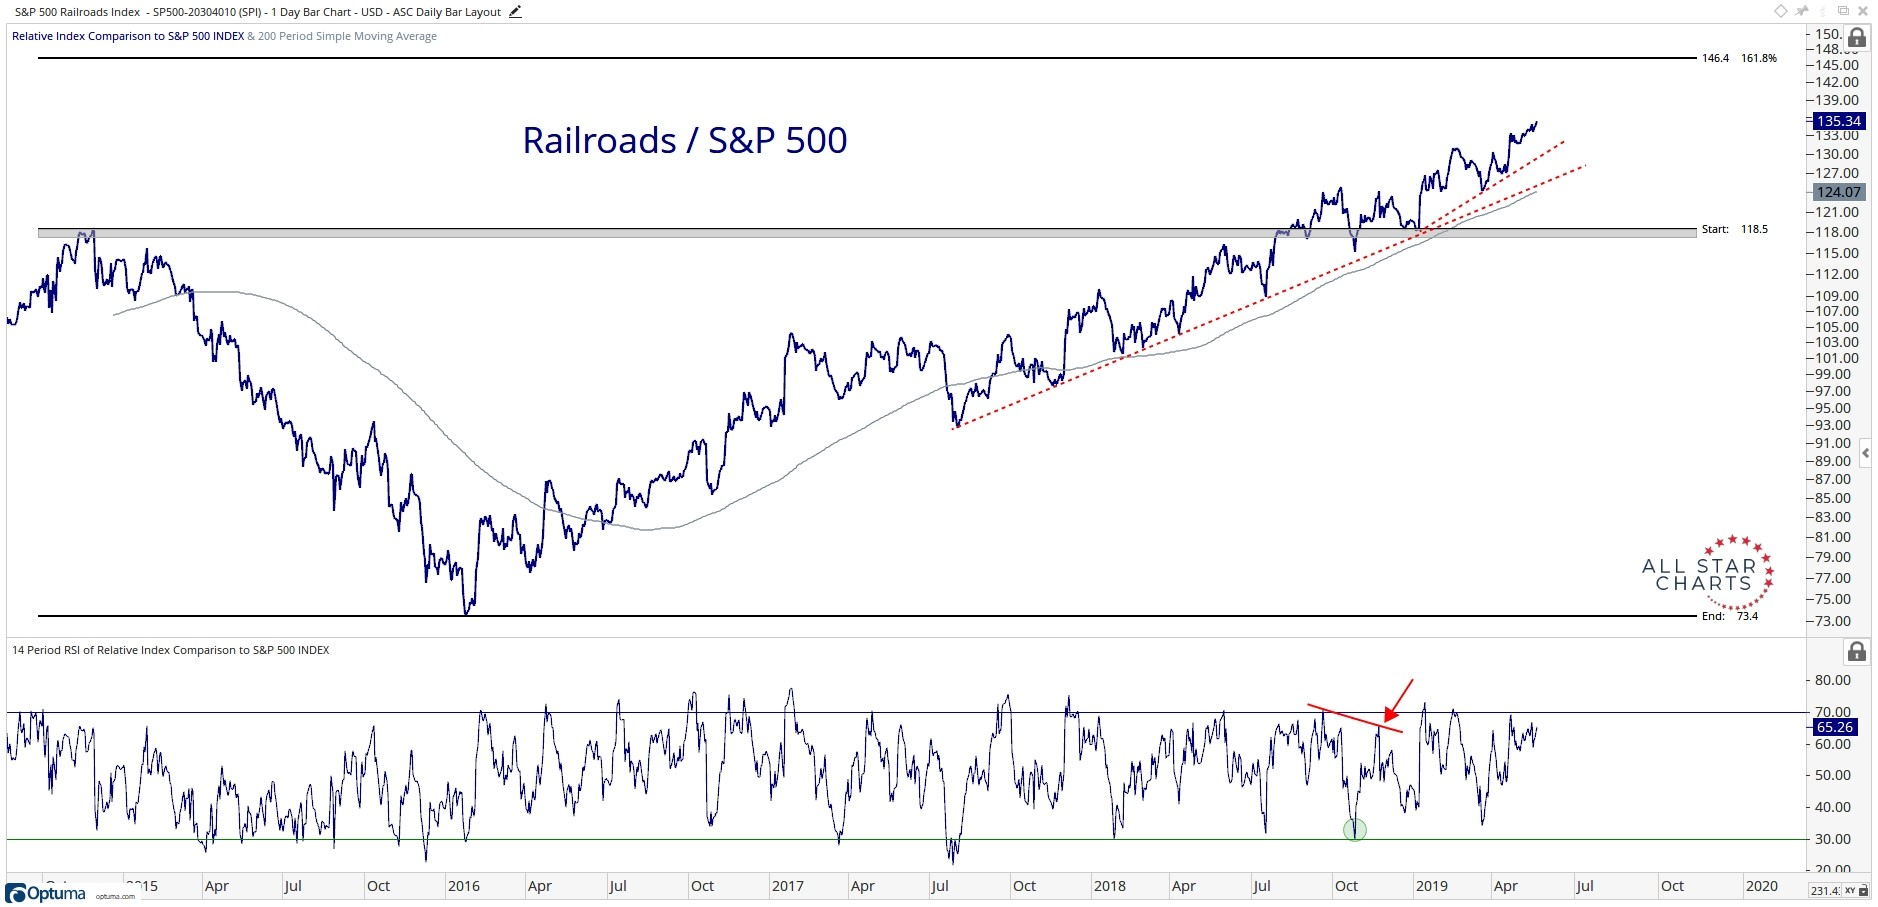 Five-year history of the performance of the S&P 500 Railroads sub-index relative to the S&P 500 Index.